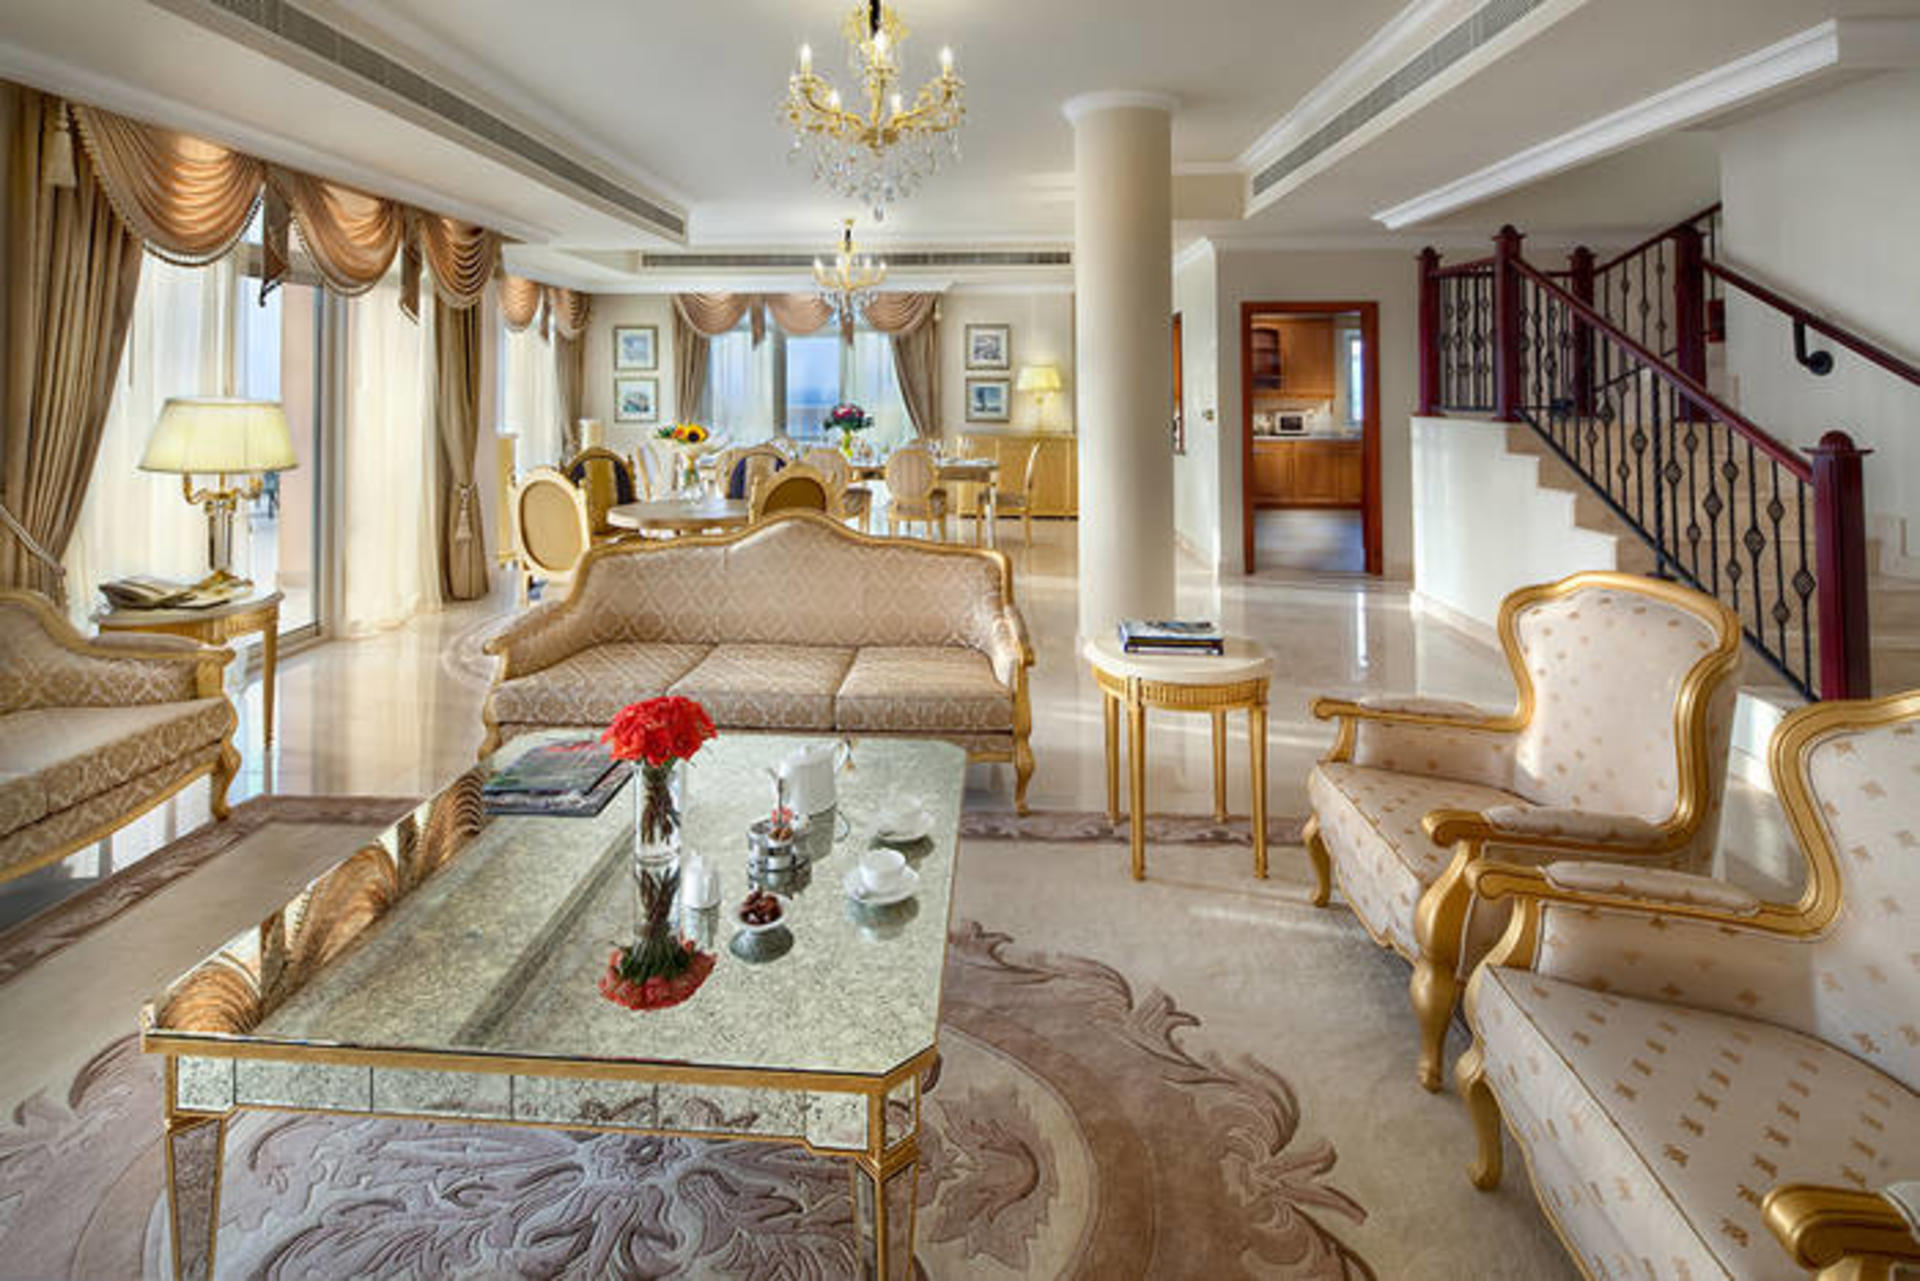 KempinskiPalmJumeirah_Superior-4-Bedroom-Penthouse